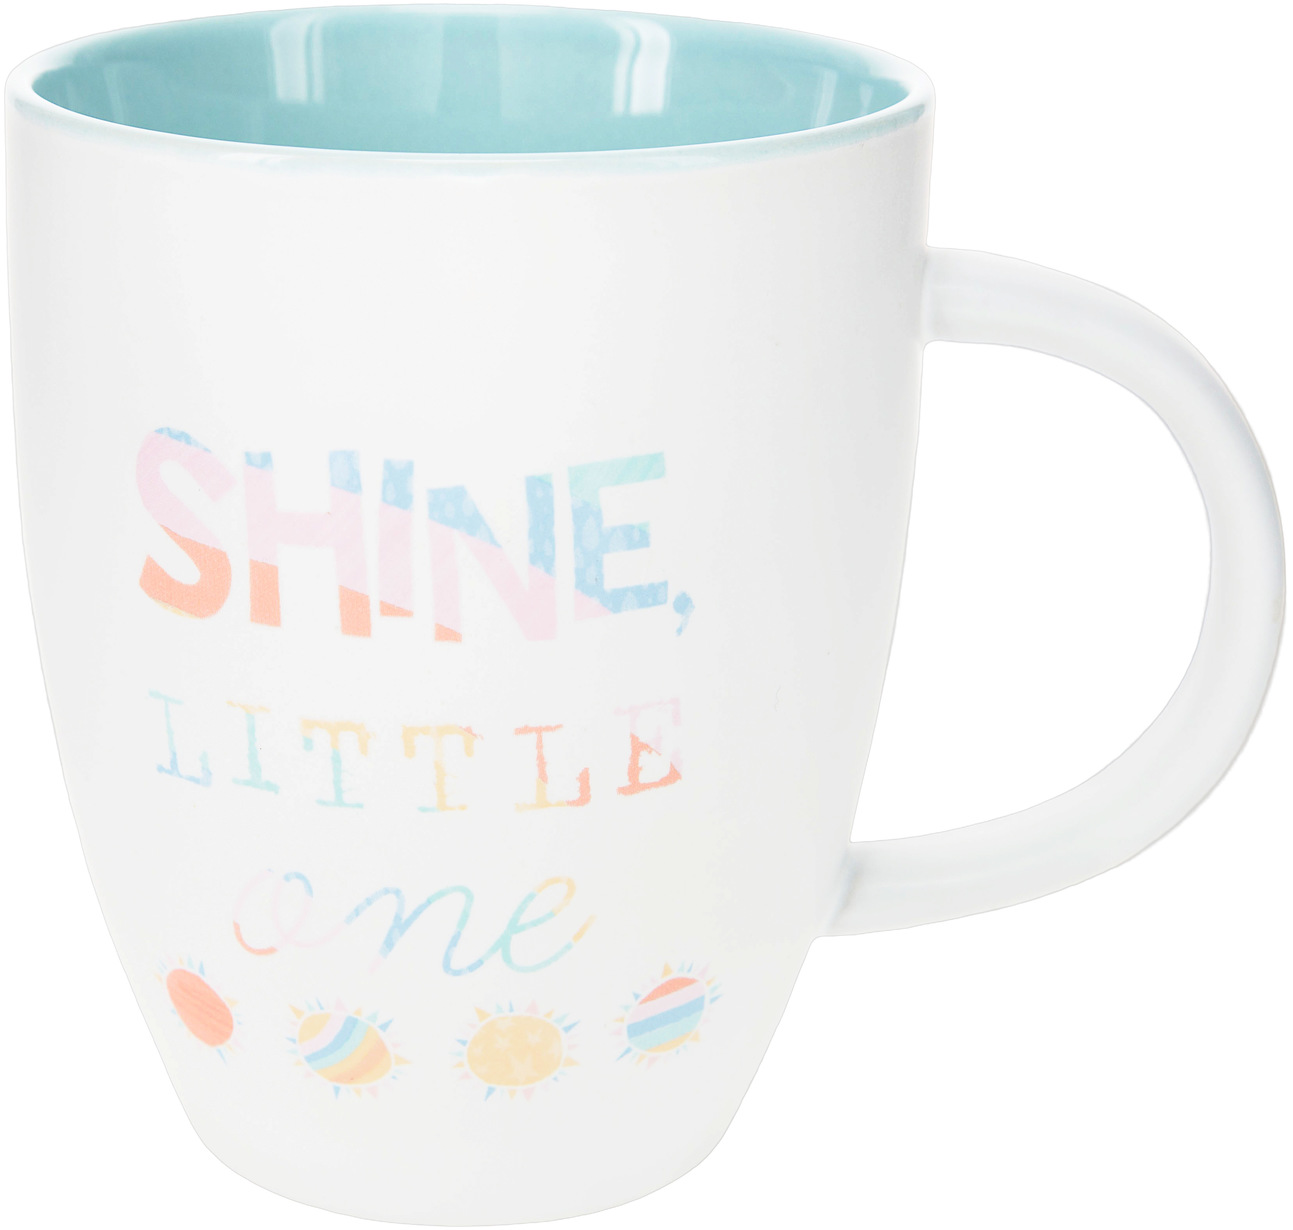 Shine Little One by Sunshine & Rainbows - Shine Little One - 20 oz Cup